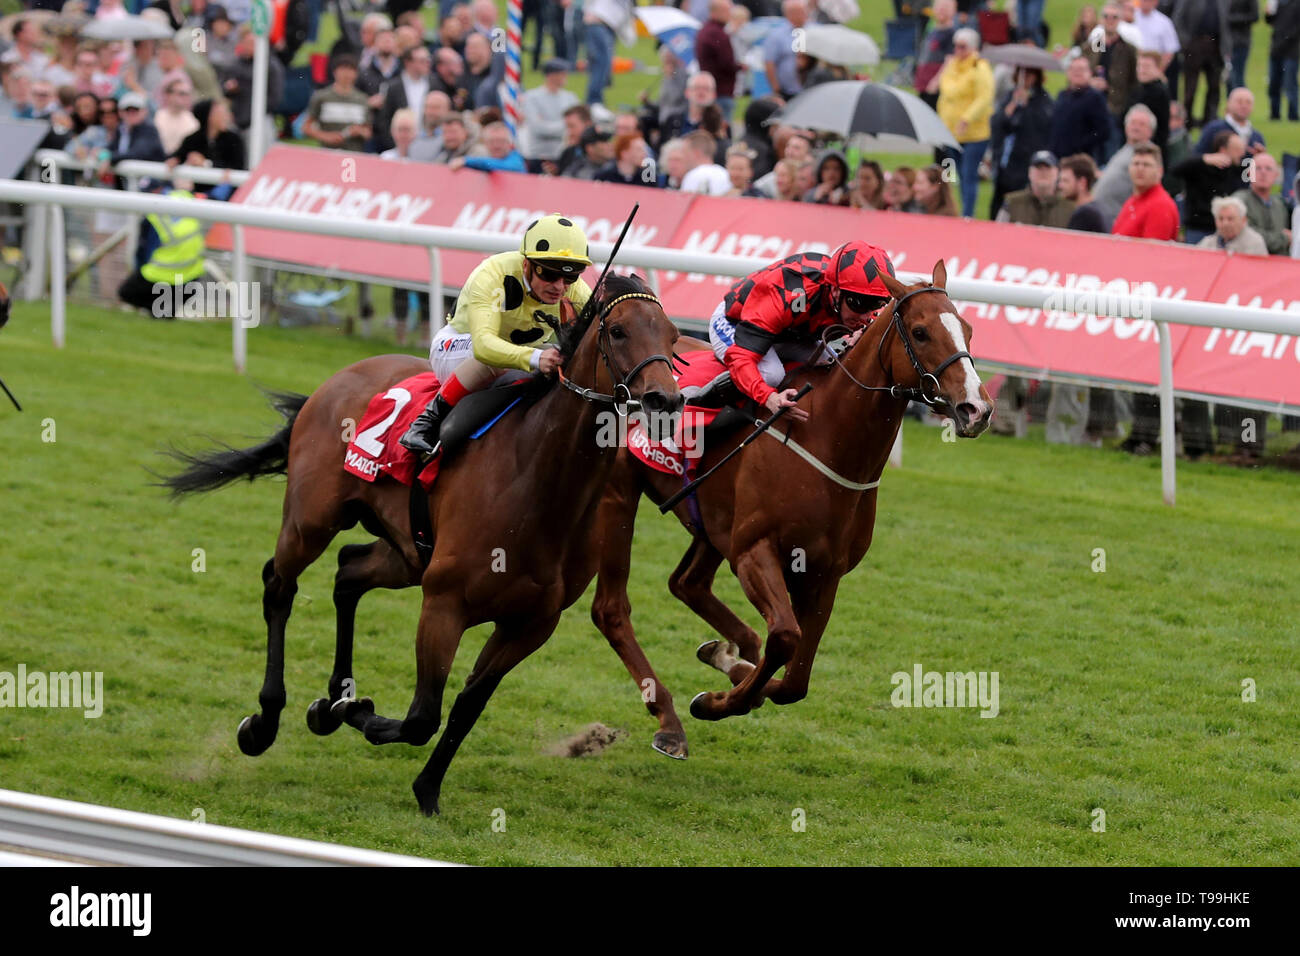 Lucius Tiberius ridden by James Doyle (L)wins the Matchbook Betting Podcast Hambleton Handicap during day three of the Dante Festival at York Racecourse. - Stock Image